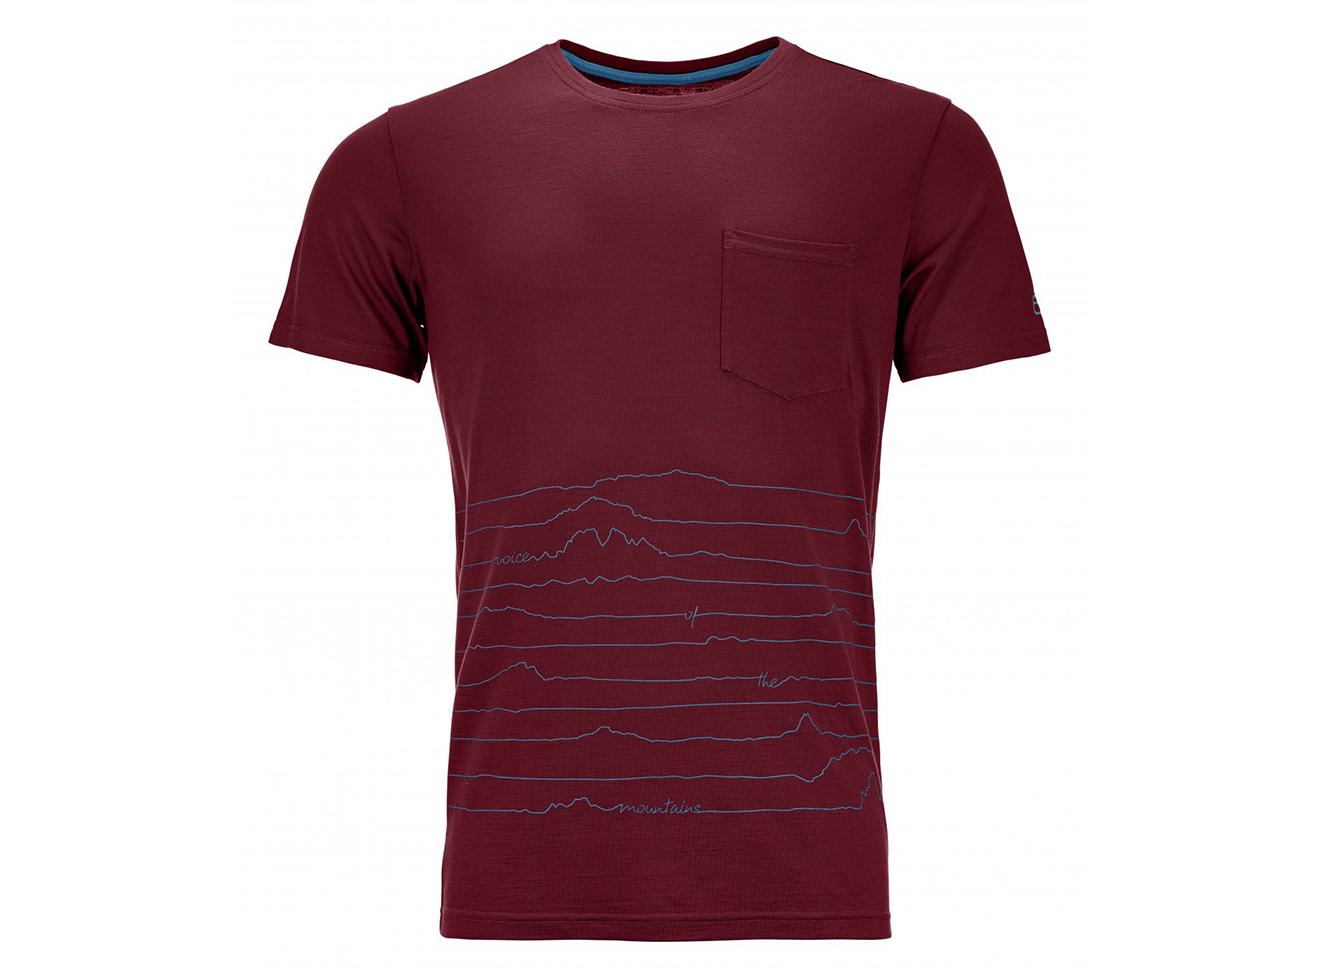 ea9dc0dcd2e6 The Best Merino Wool T-Shirts for Men to Wick Sweat